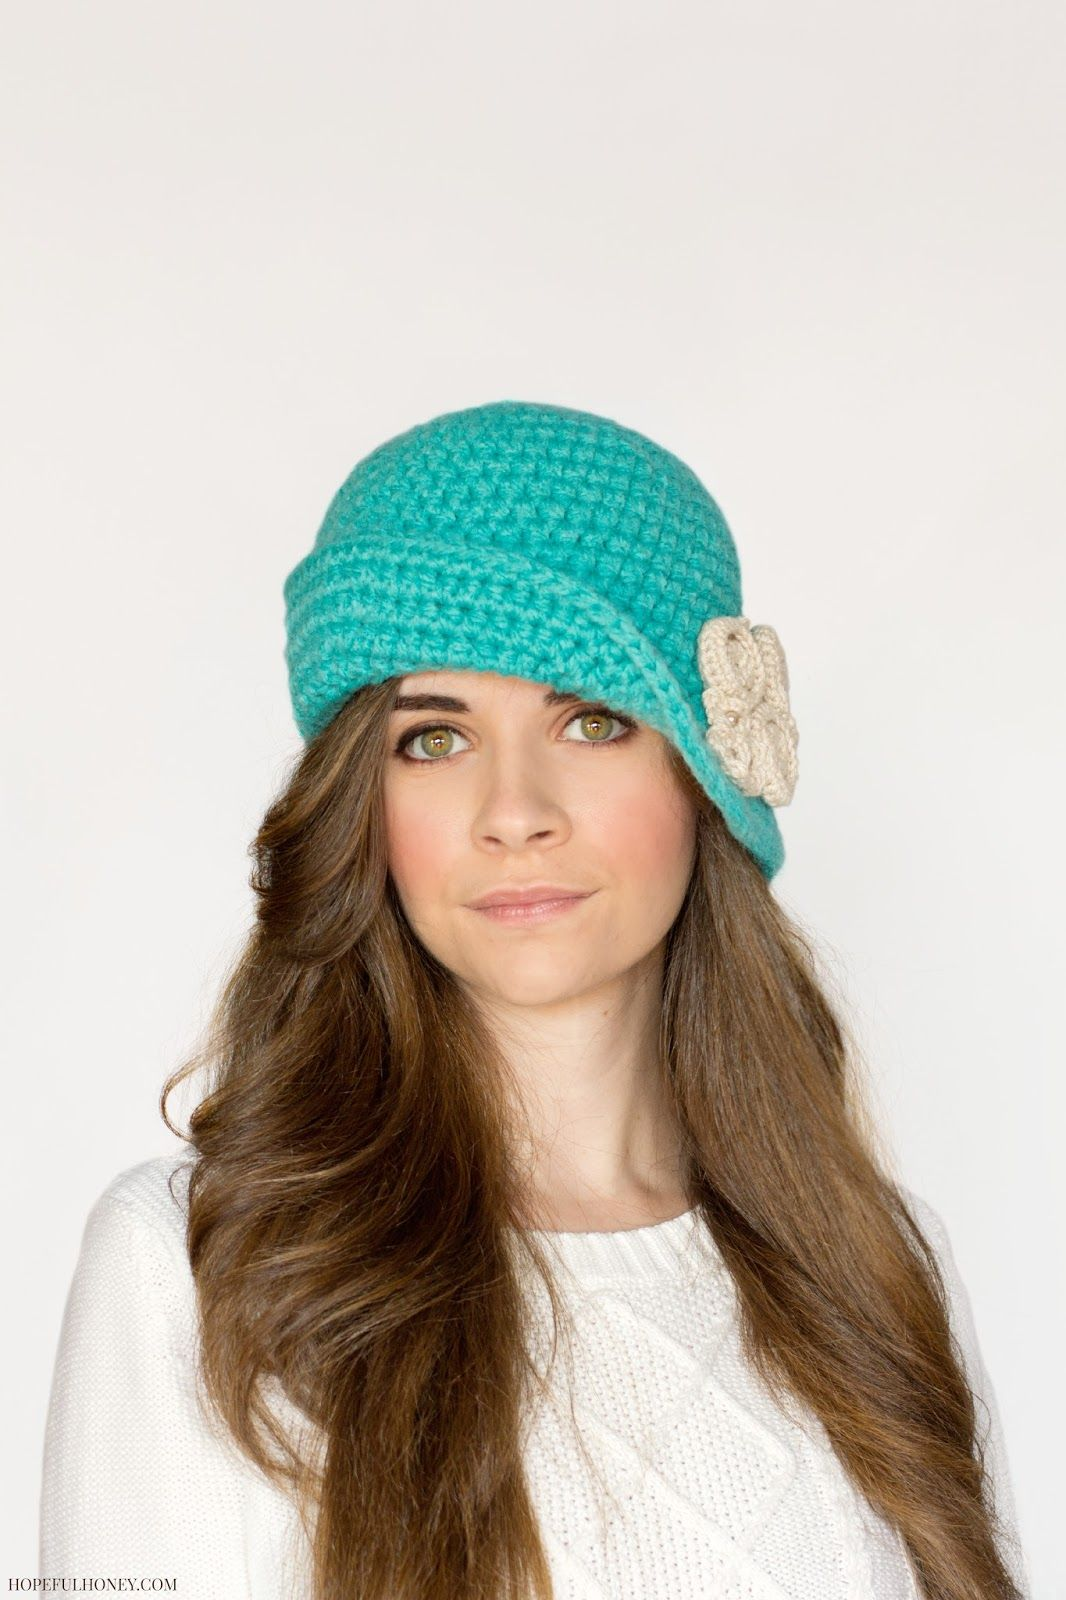 Charleston Cloche Hat Crochet Pattern | Pinterest | Cloche hats, Hat ...